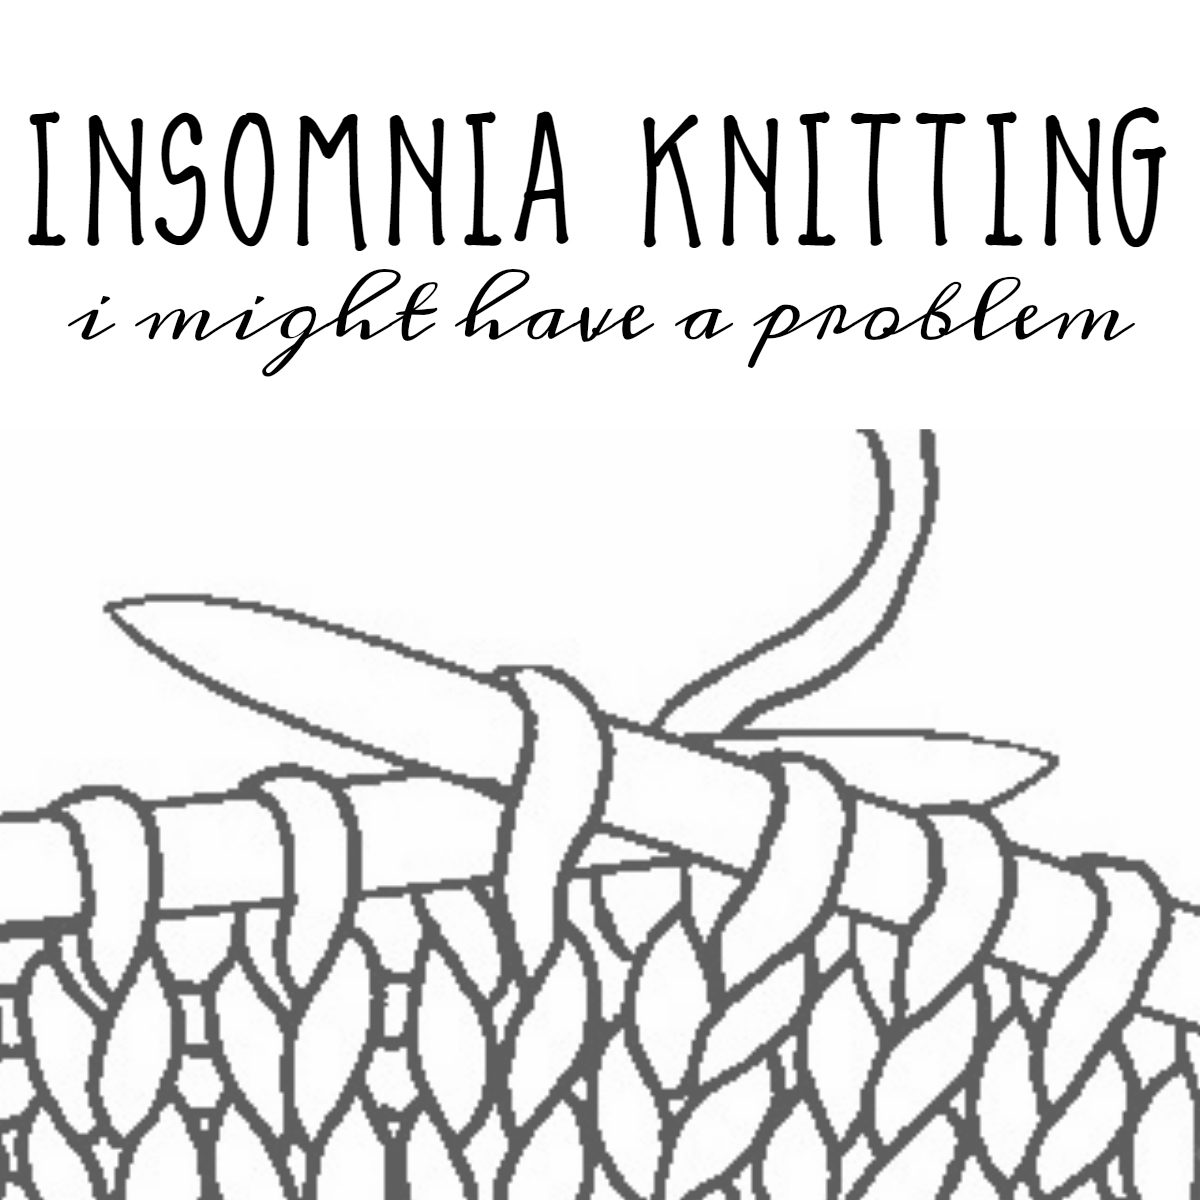 insomnia knitting